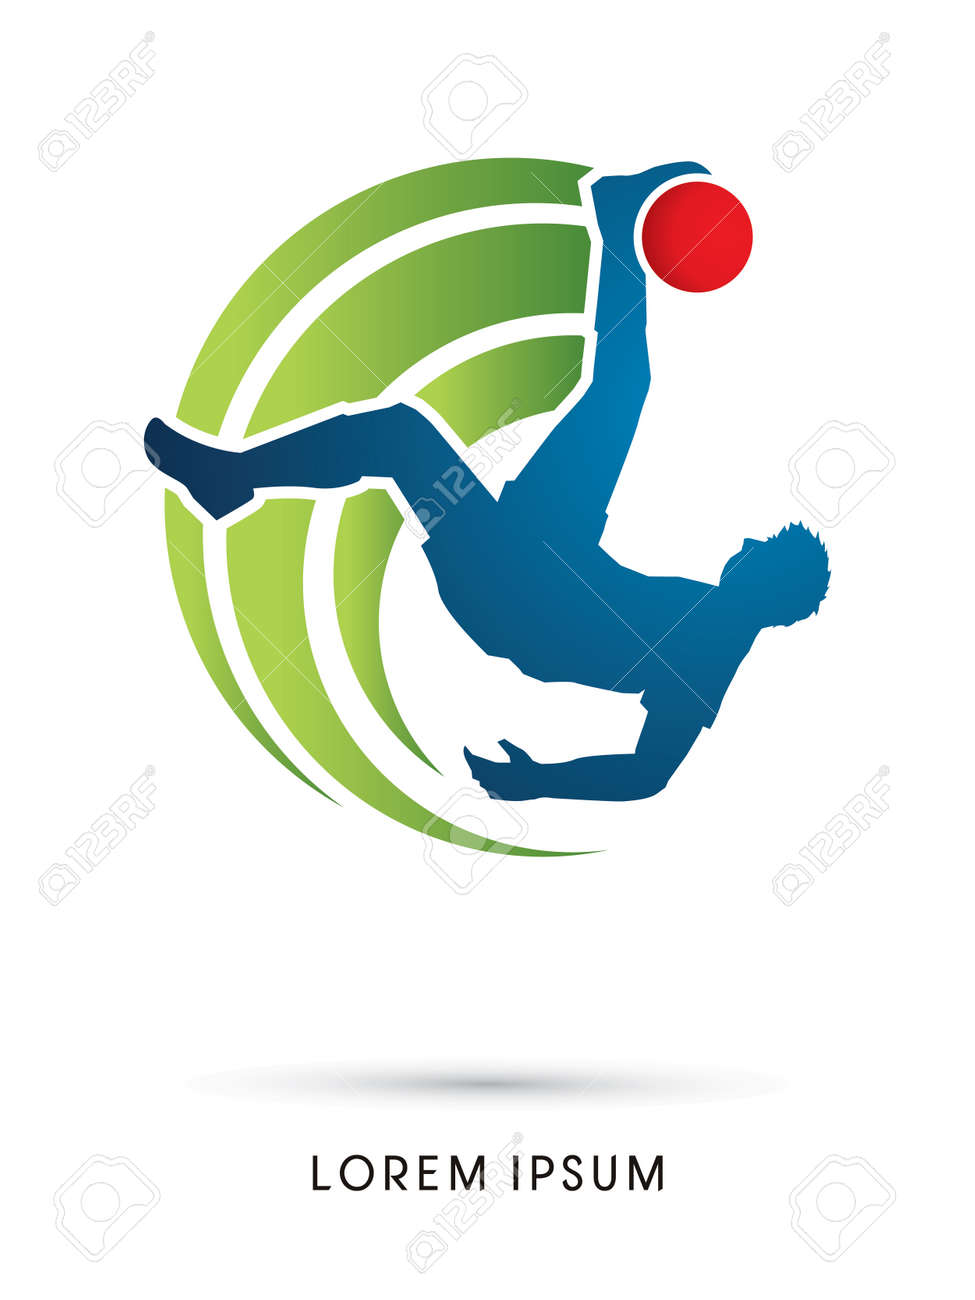 Soccer player hit the ball, Bicycle Kick graphic vector. - 48842325